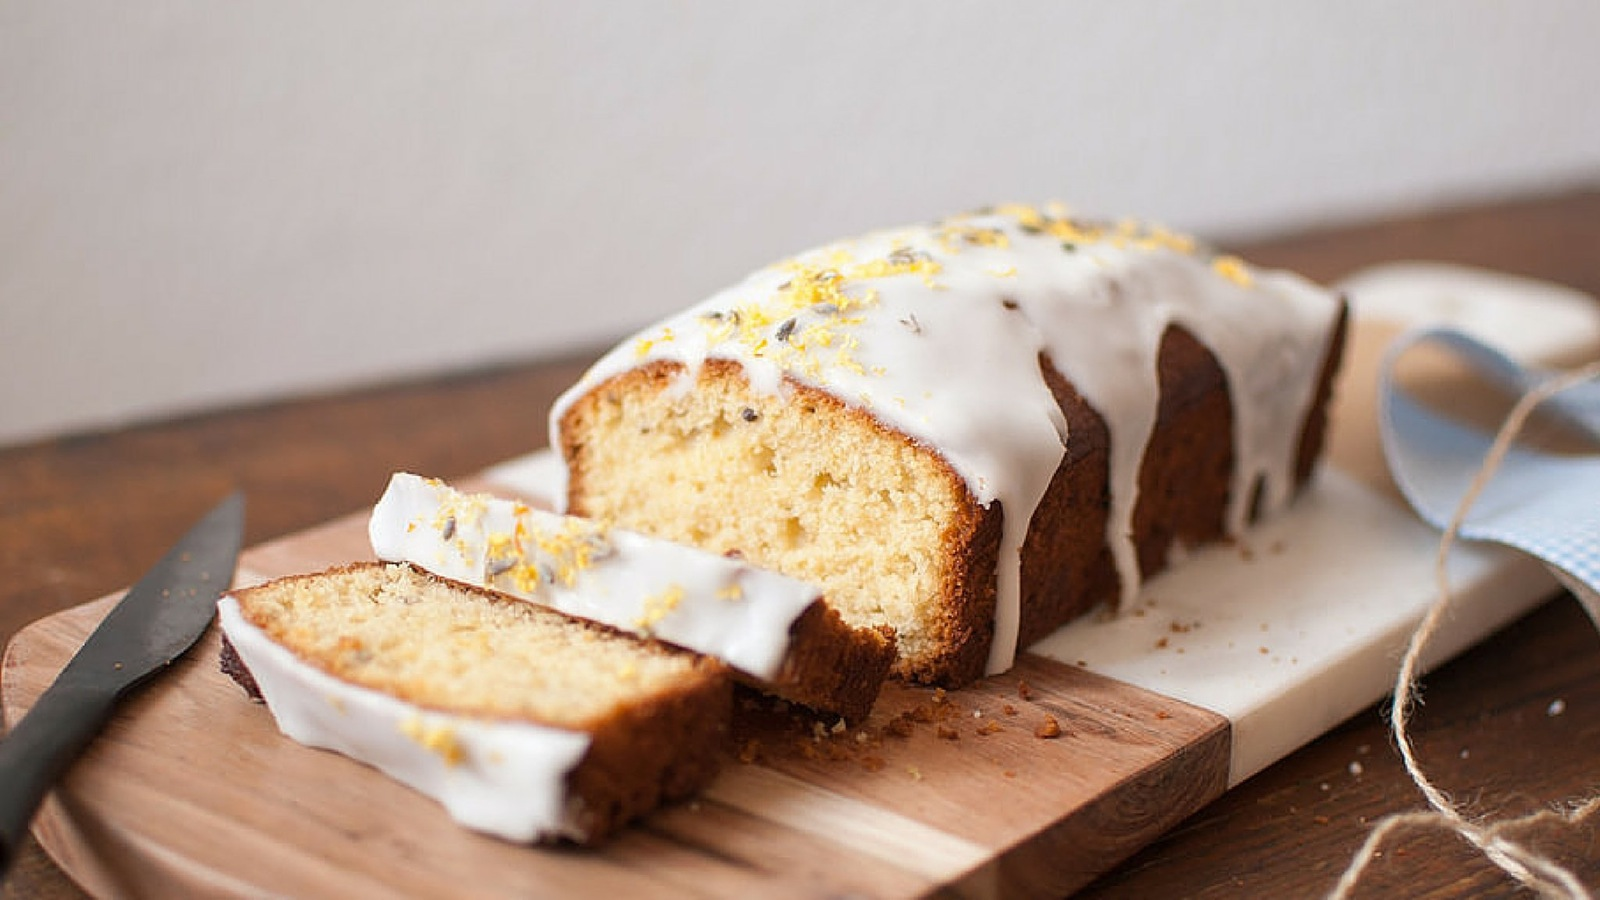 Freshly baked lemon cake